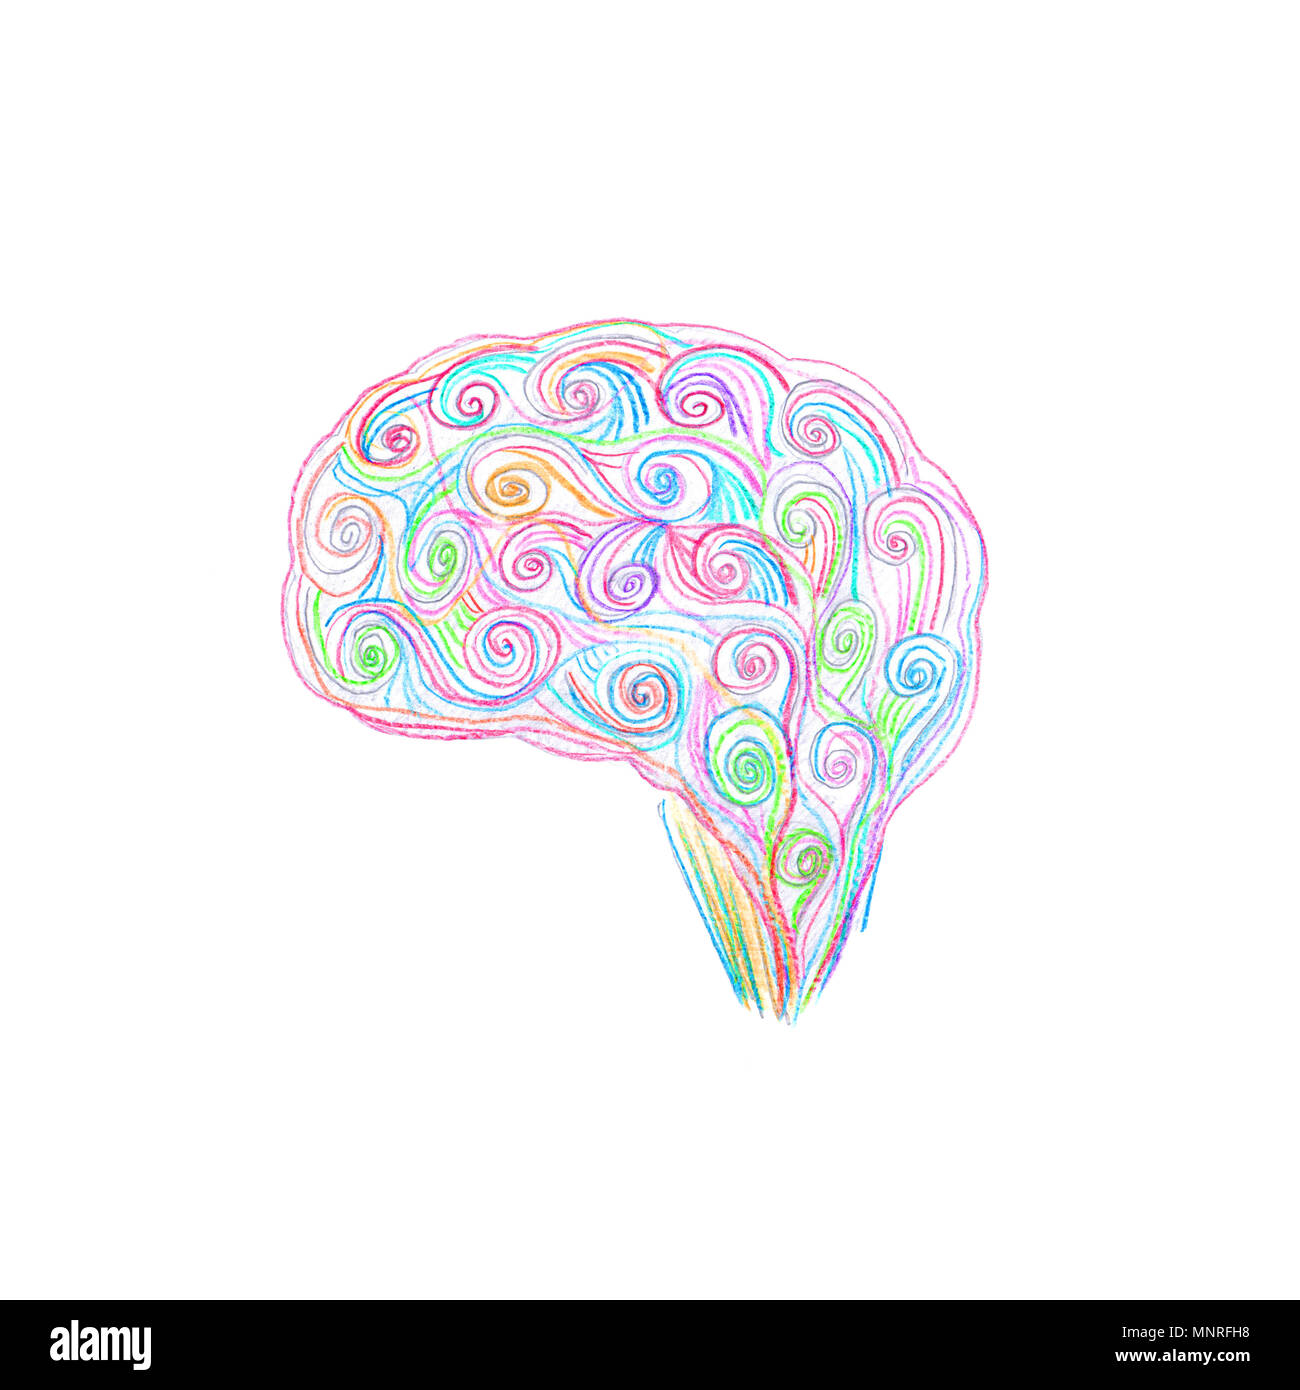 Brain drawing with colored pencils. Creativity concept. Stock Photo